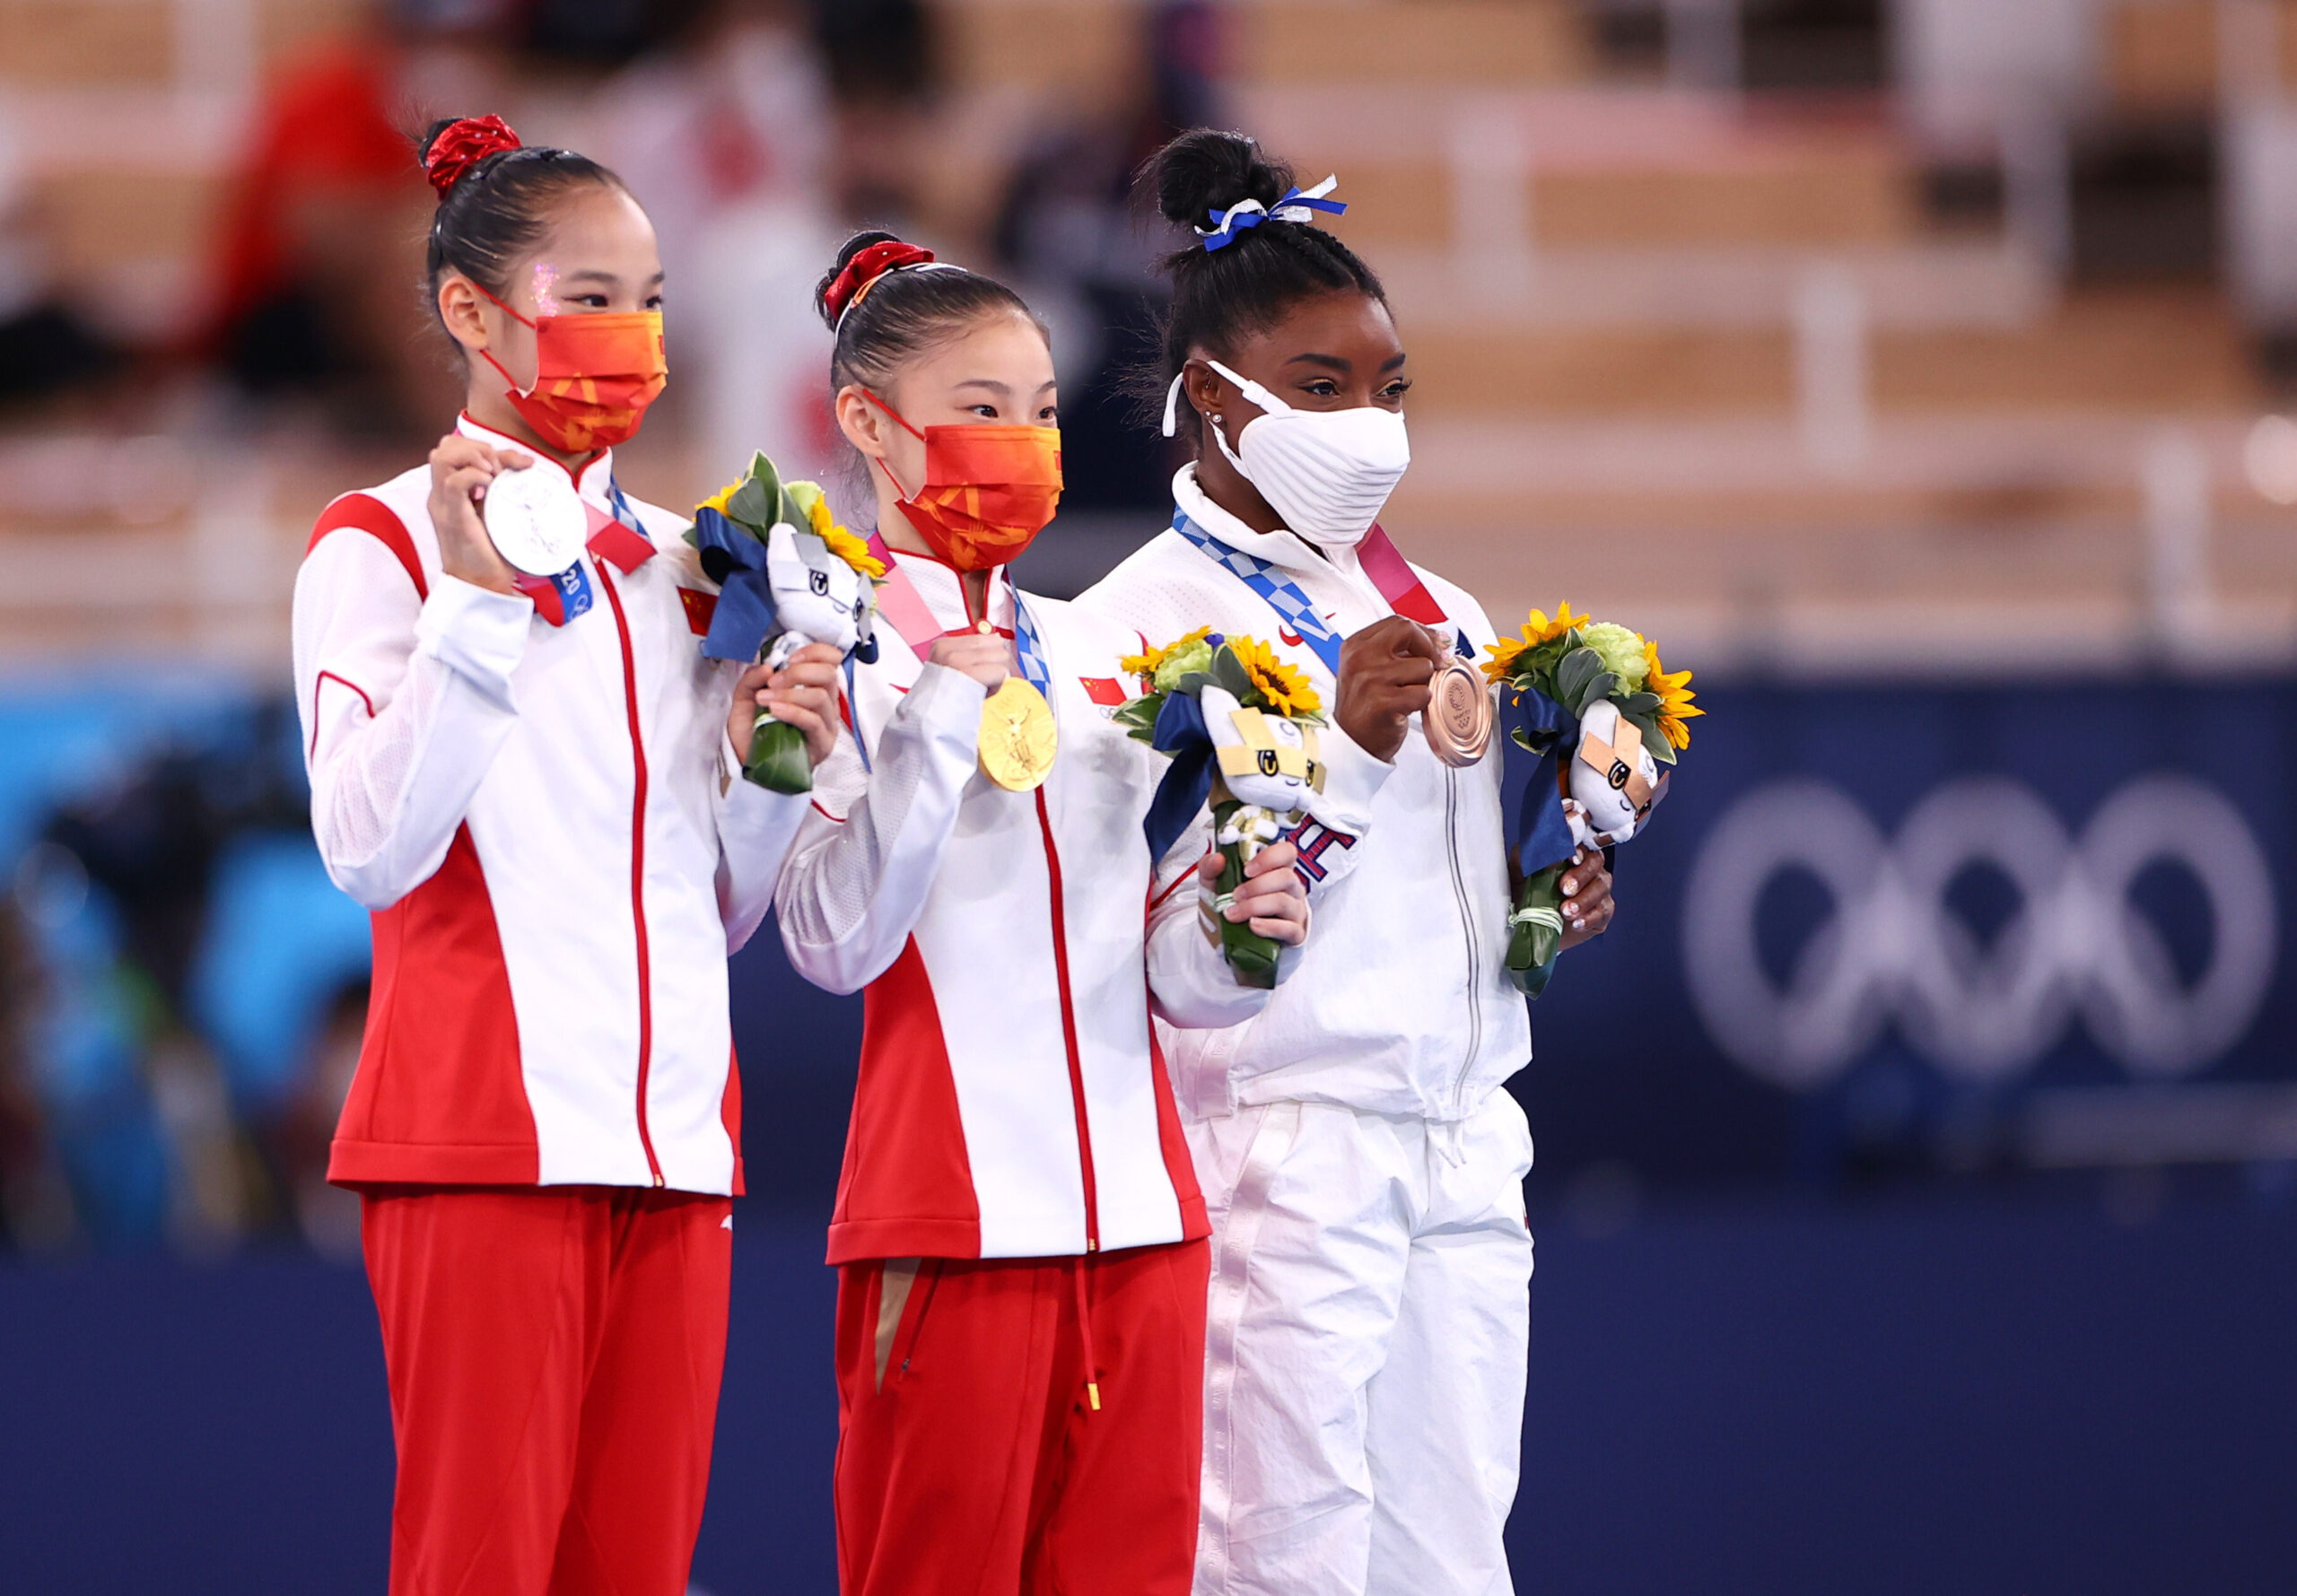 <i>Lisi Niesner/Reuters</i><br/>China's Guan Chenchen won gold in the women's balance beam final at the Tokyo Olympics as Simone Biles claimed a bronze.